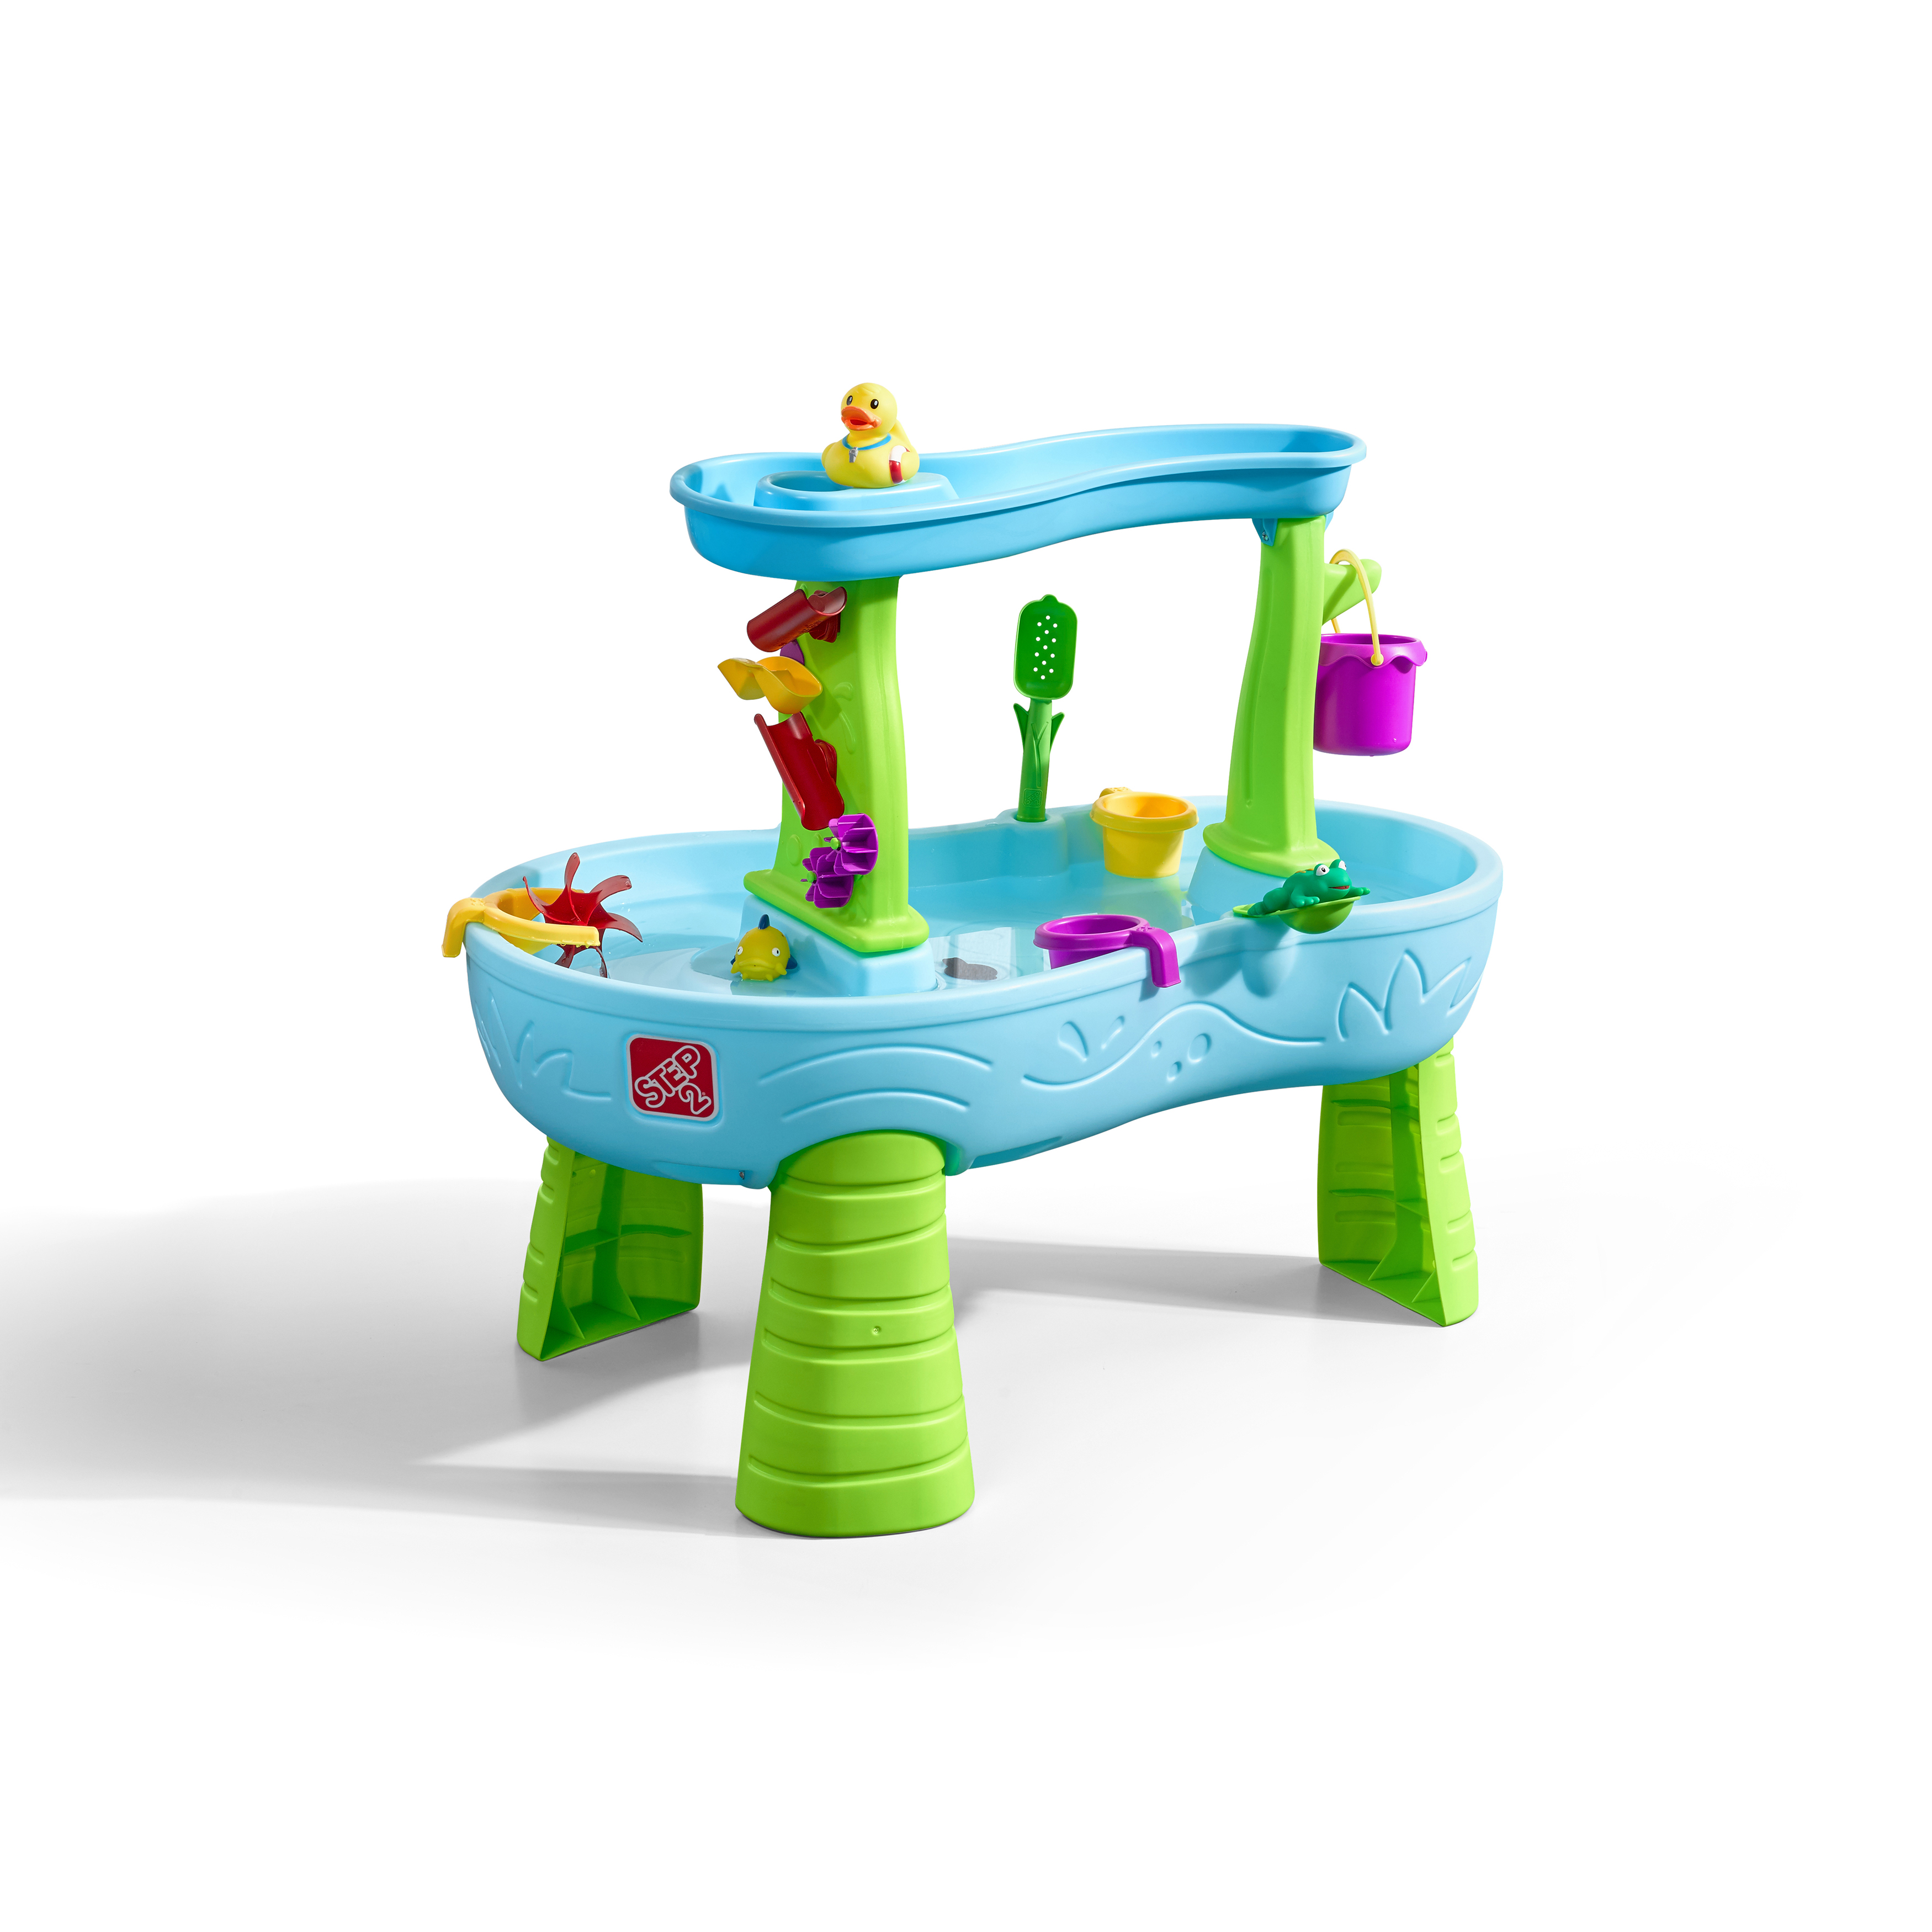 Step2 Rain Showers Splash Pond Water Table Kids Playset with 13 Piece Accessory Set